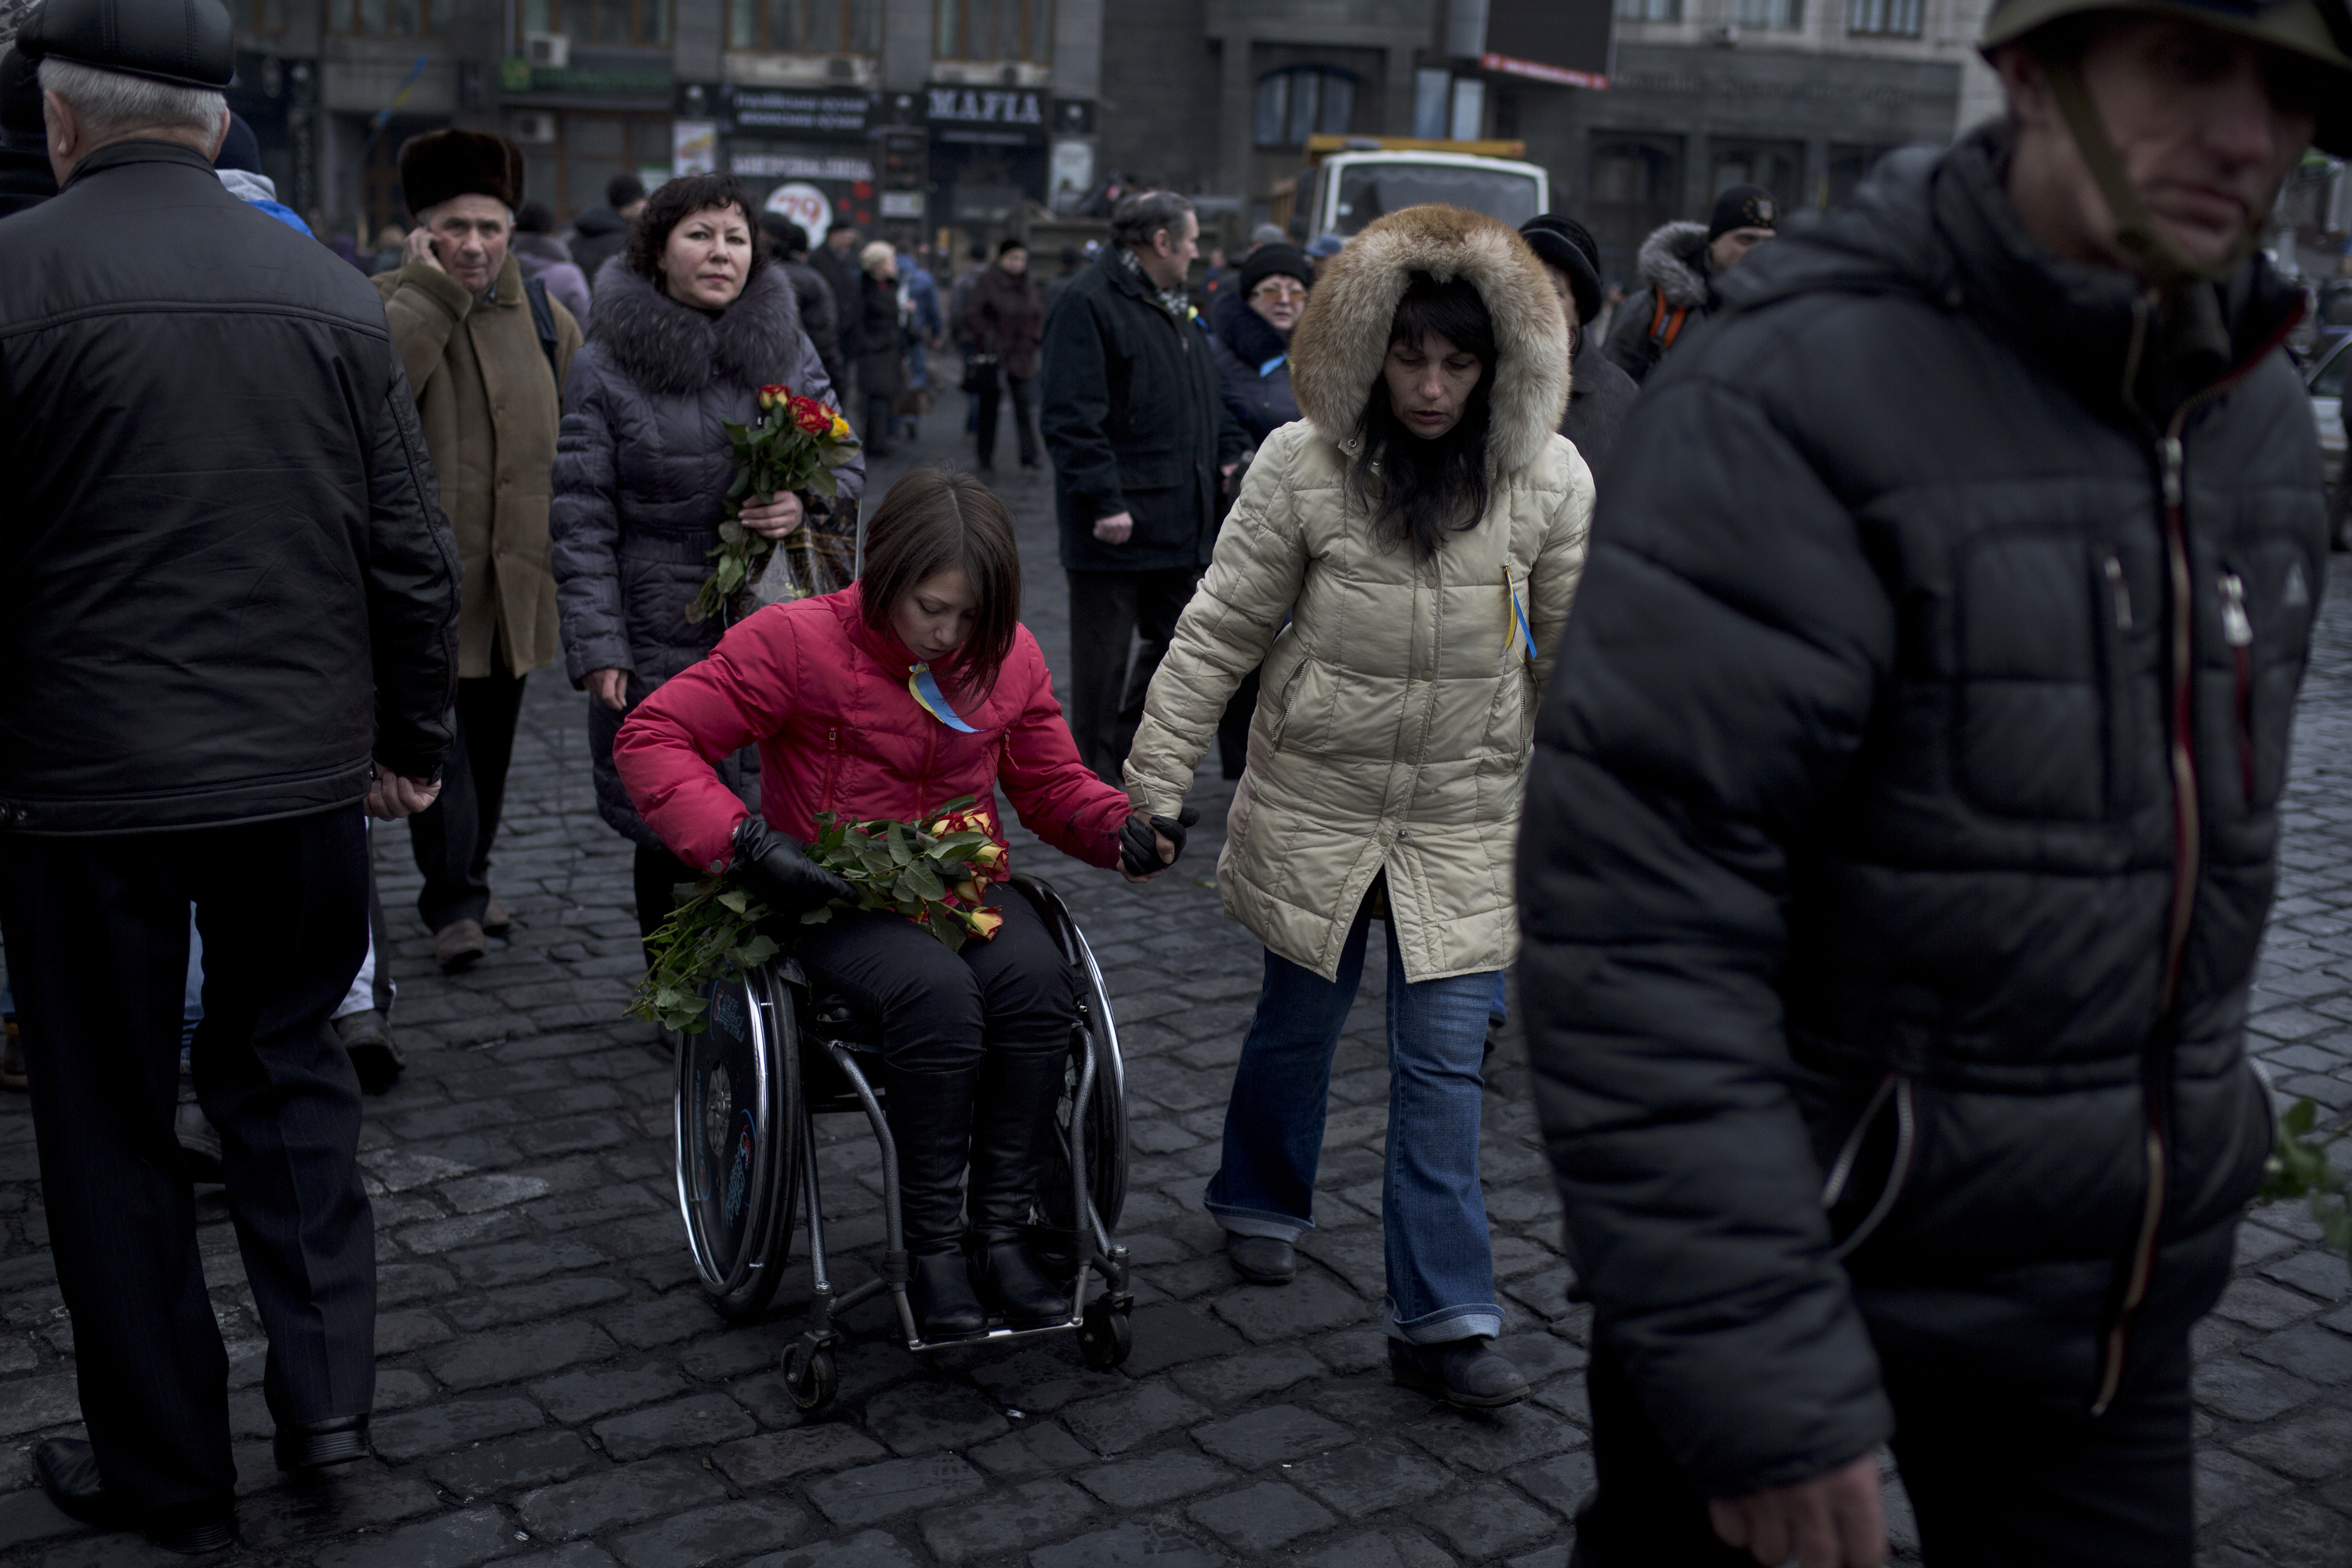 Women distribute flowers to anti-government protesters guarding the barricades in Independence Square in Kiev, Ukraine on Feb. 23, 2014. (Ed Ou/Reportage by Getty Images)